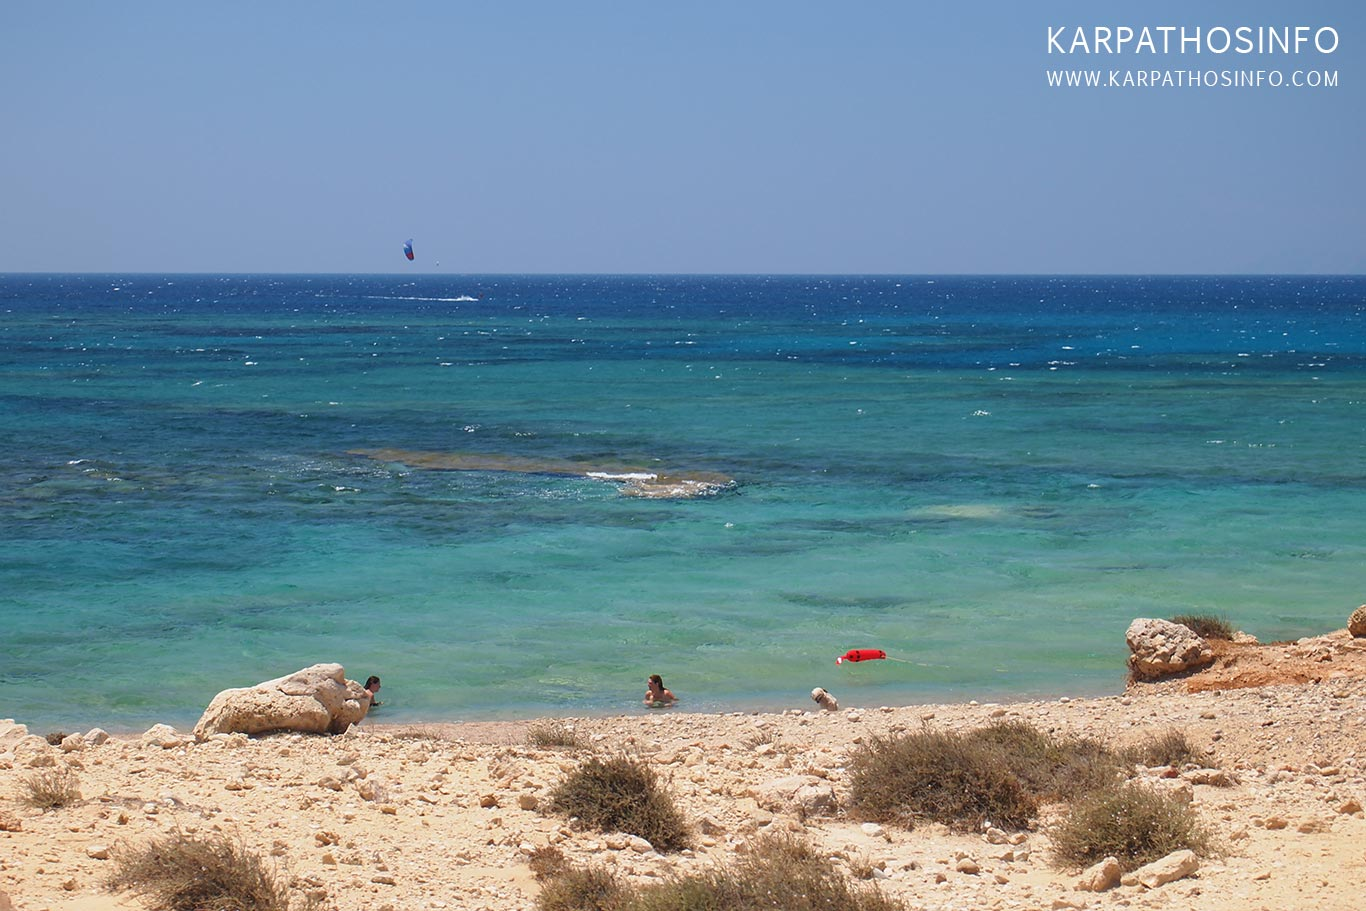 Airport beaches Karpathos island